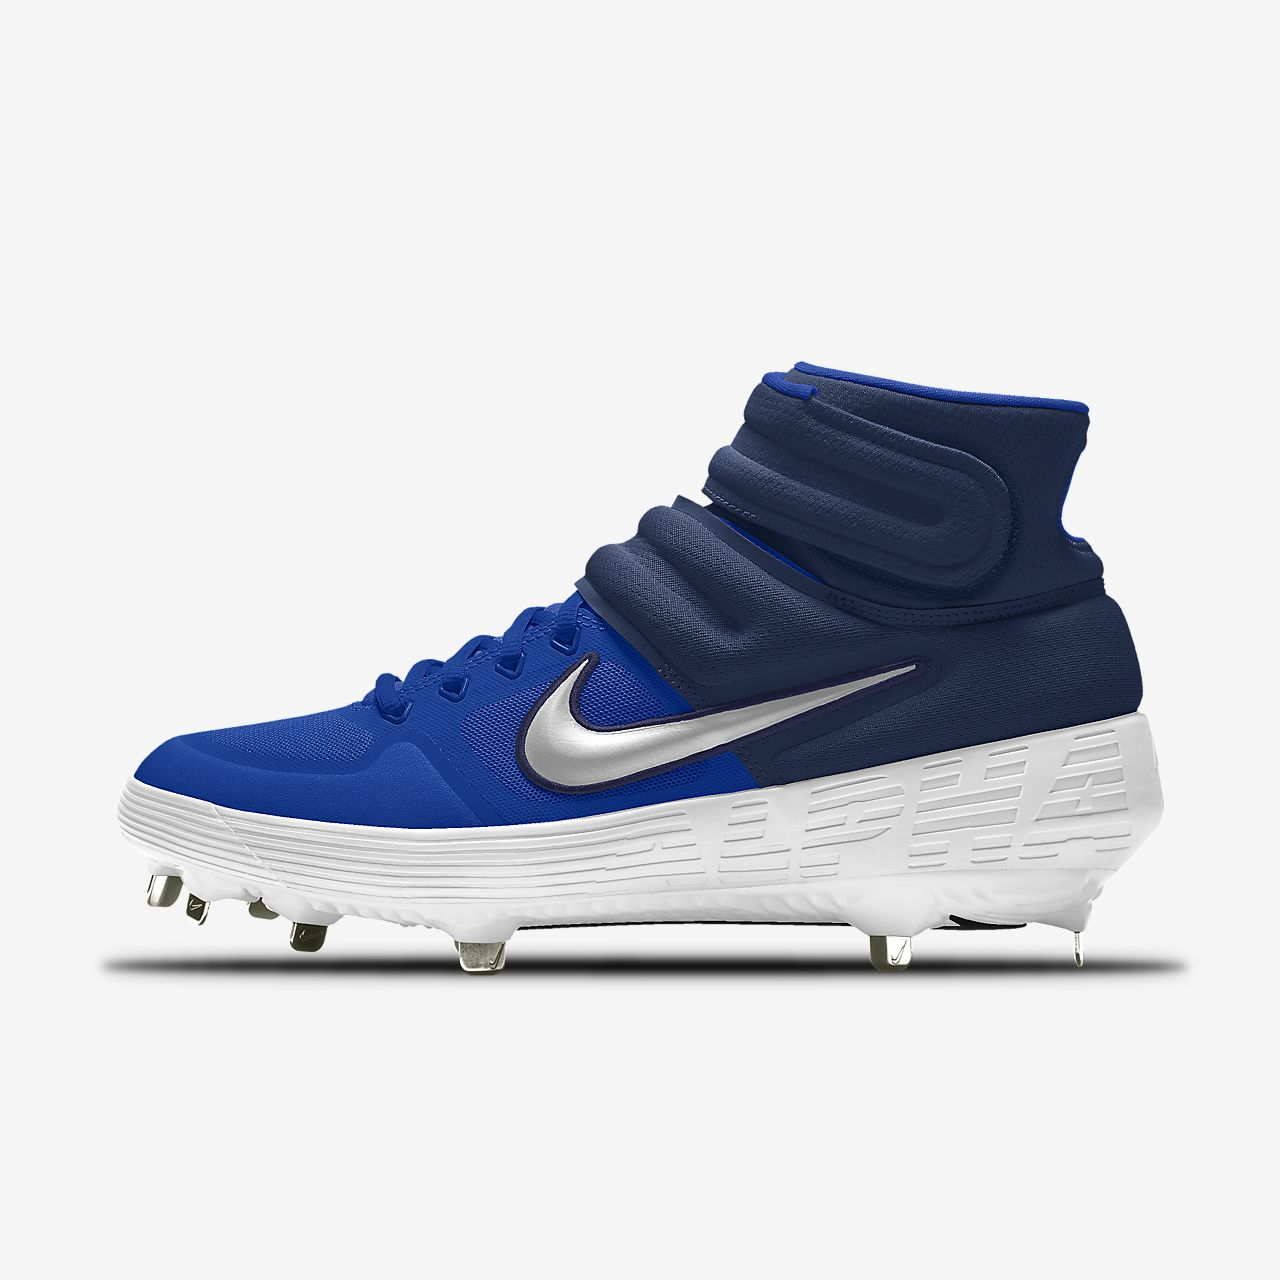 Scarpa da baseball personalizzabile Nike Alpha Huarache Elite 2 Mid By You